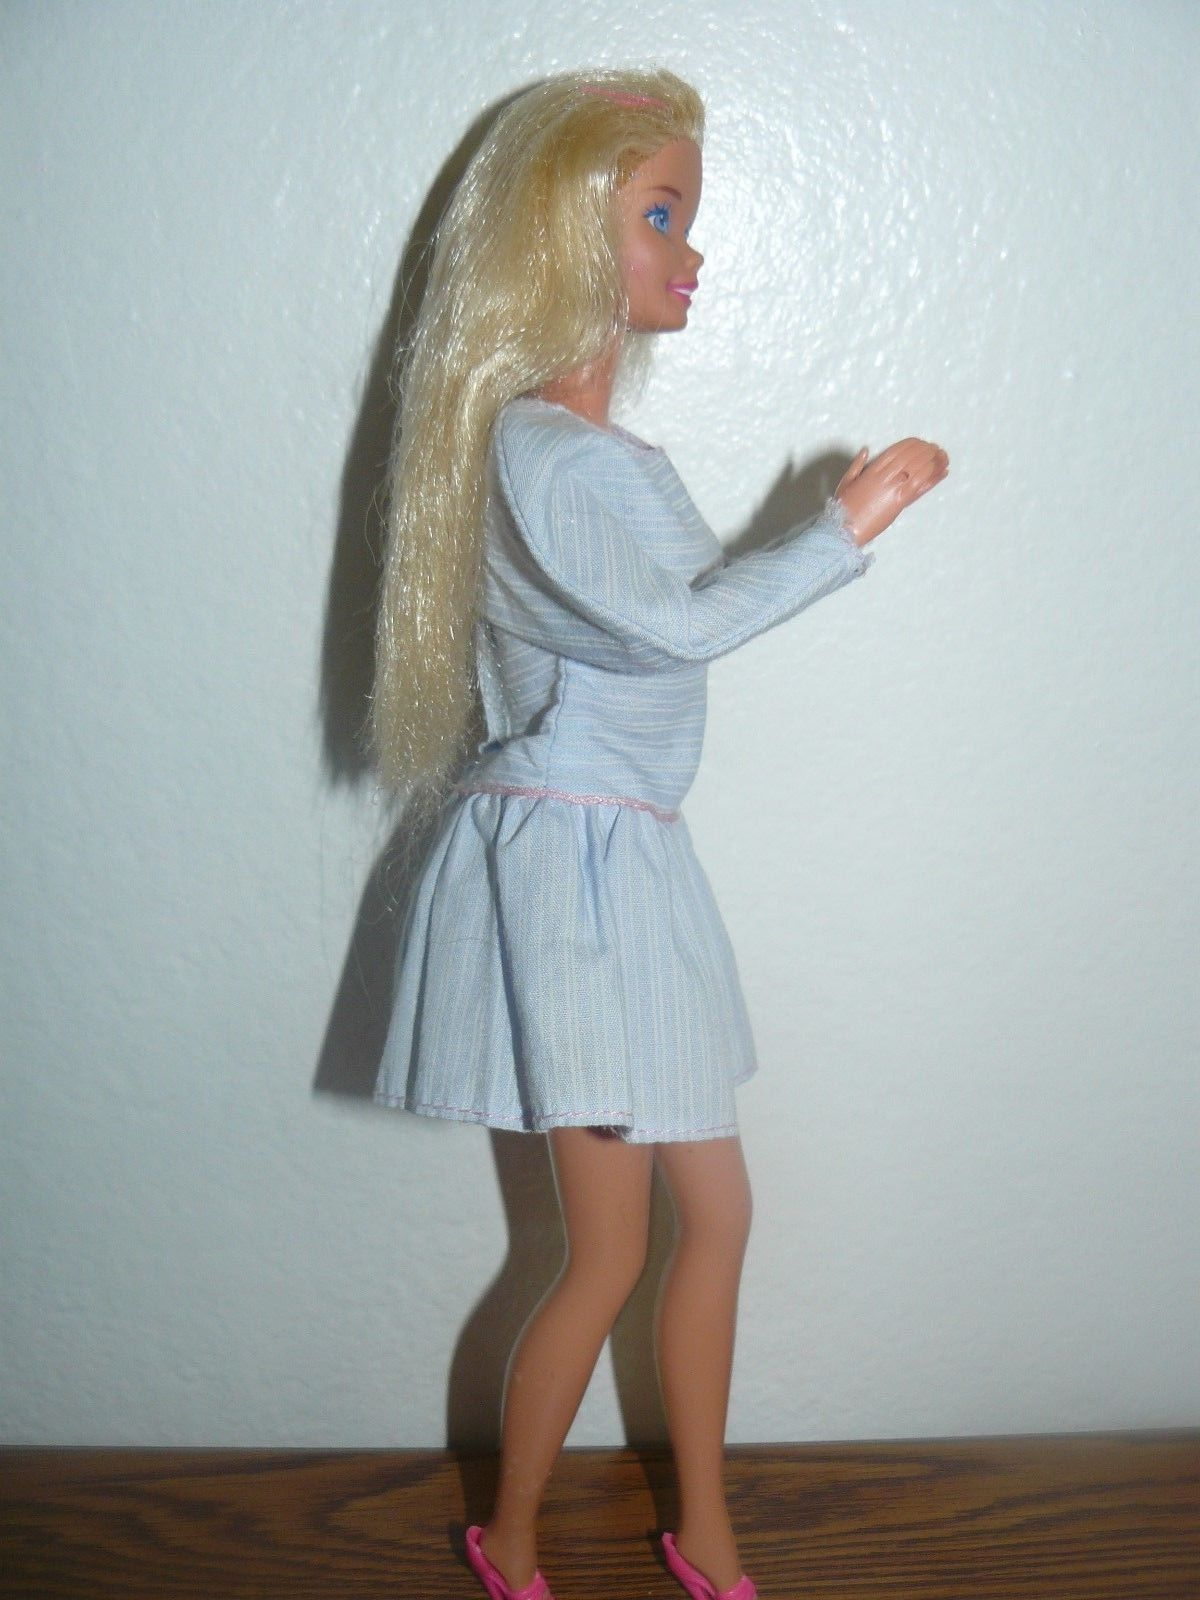 83ff6cc9d1ed Mattel Blond Barbie Doll in light blue dress pink shoes white earrings